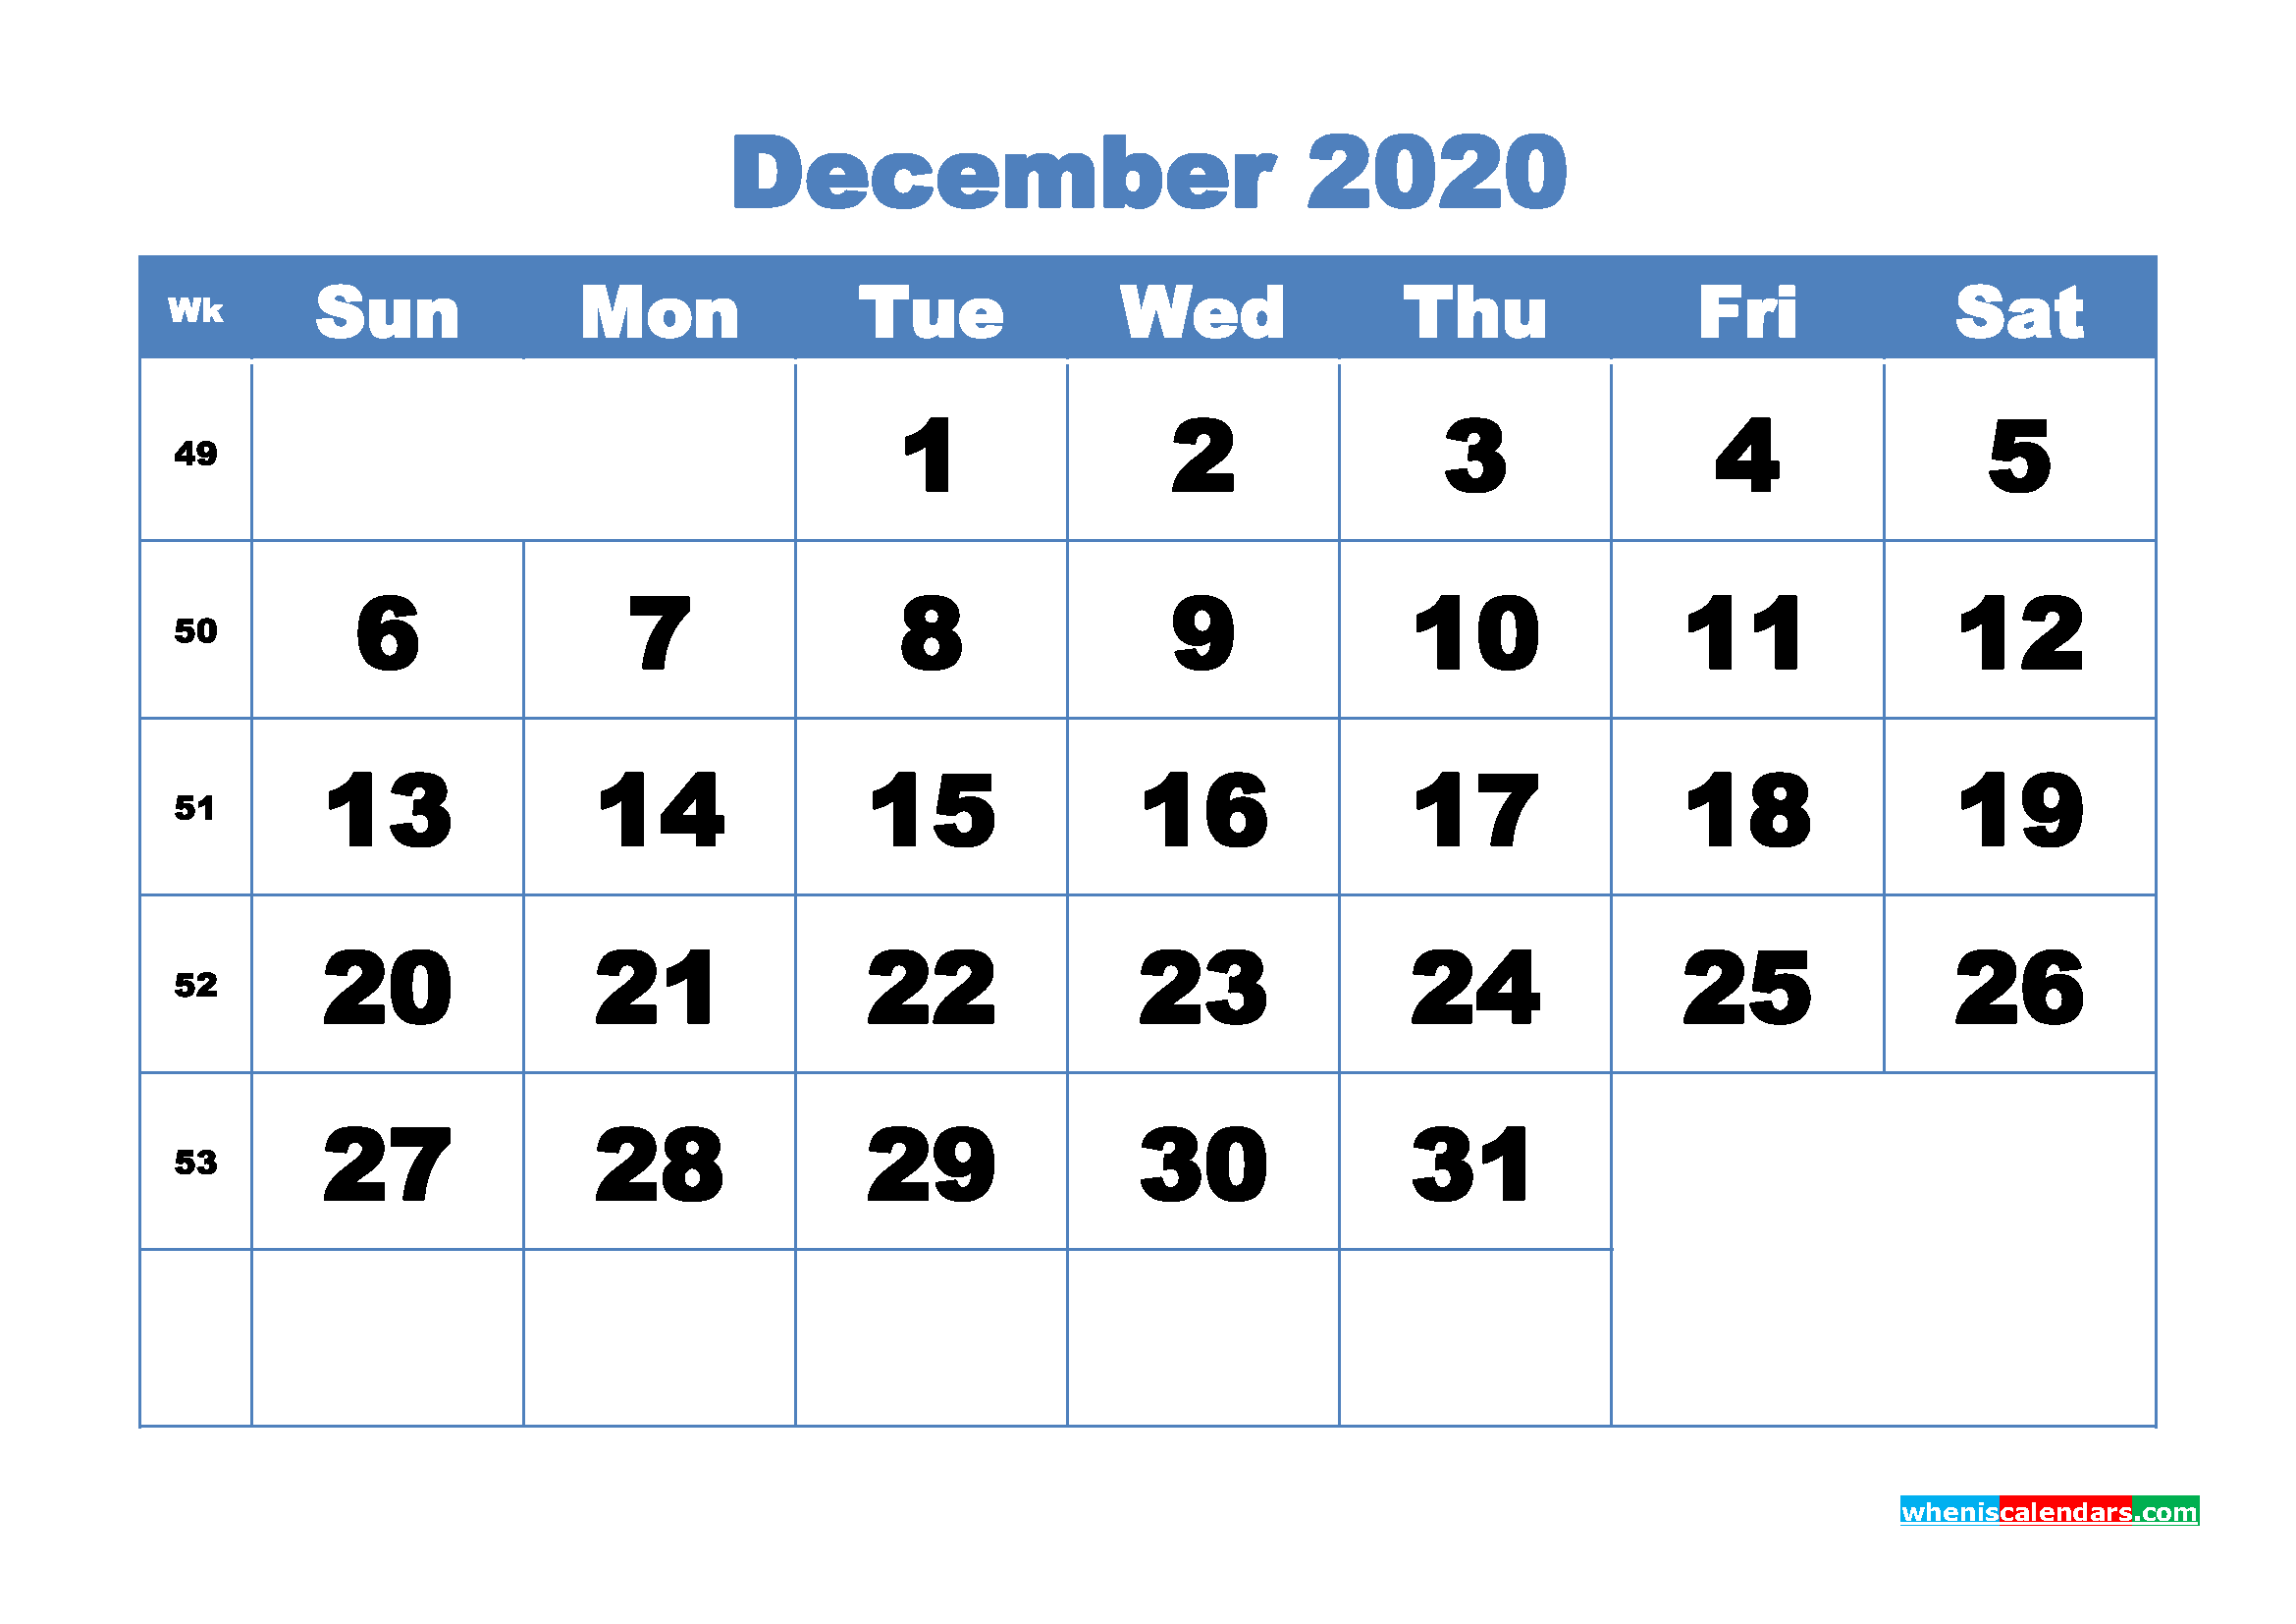 December Printable Calendar 2020 PDF, Word - No.m20b312